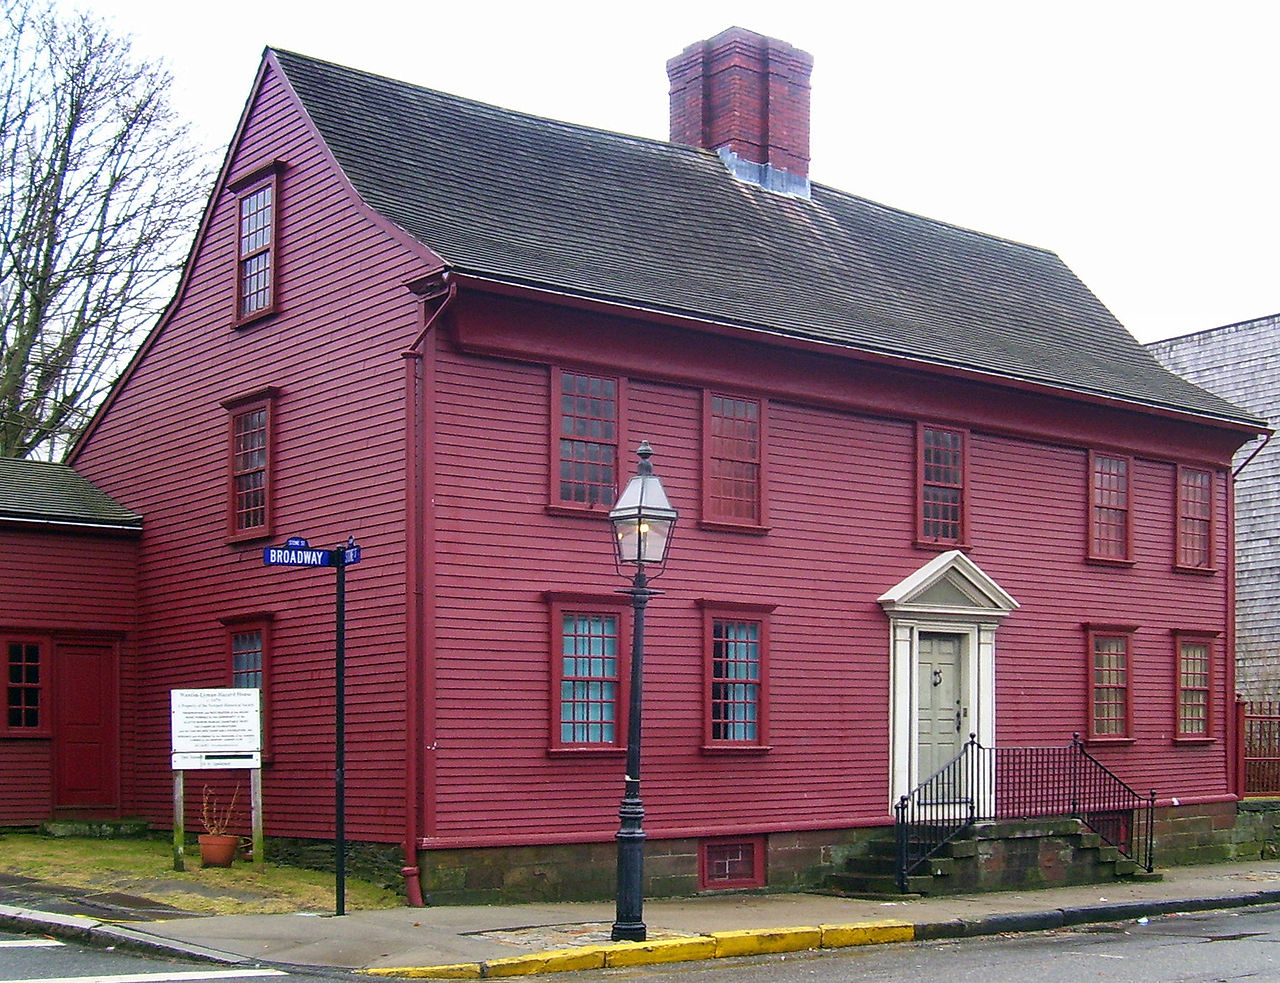 The Wanton-Lyman-Hazard House has been owned by the Newport Historical Society since 1927.